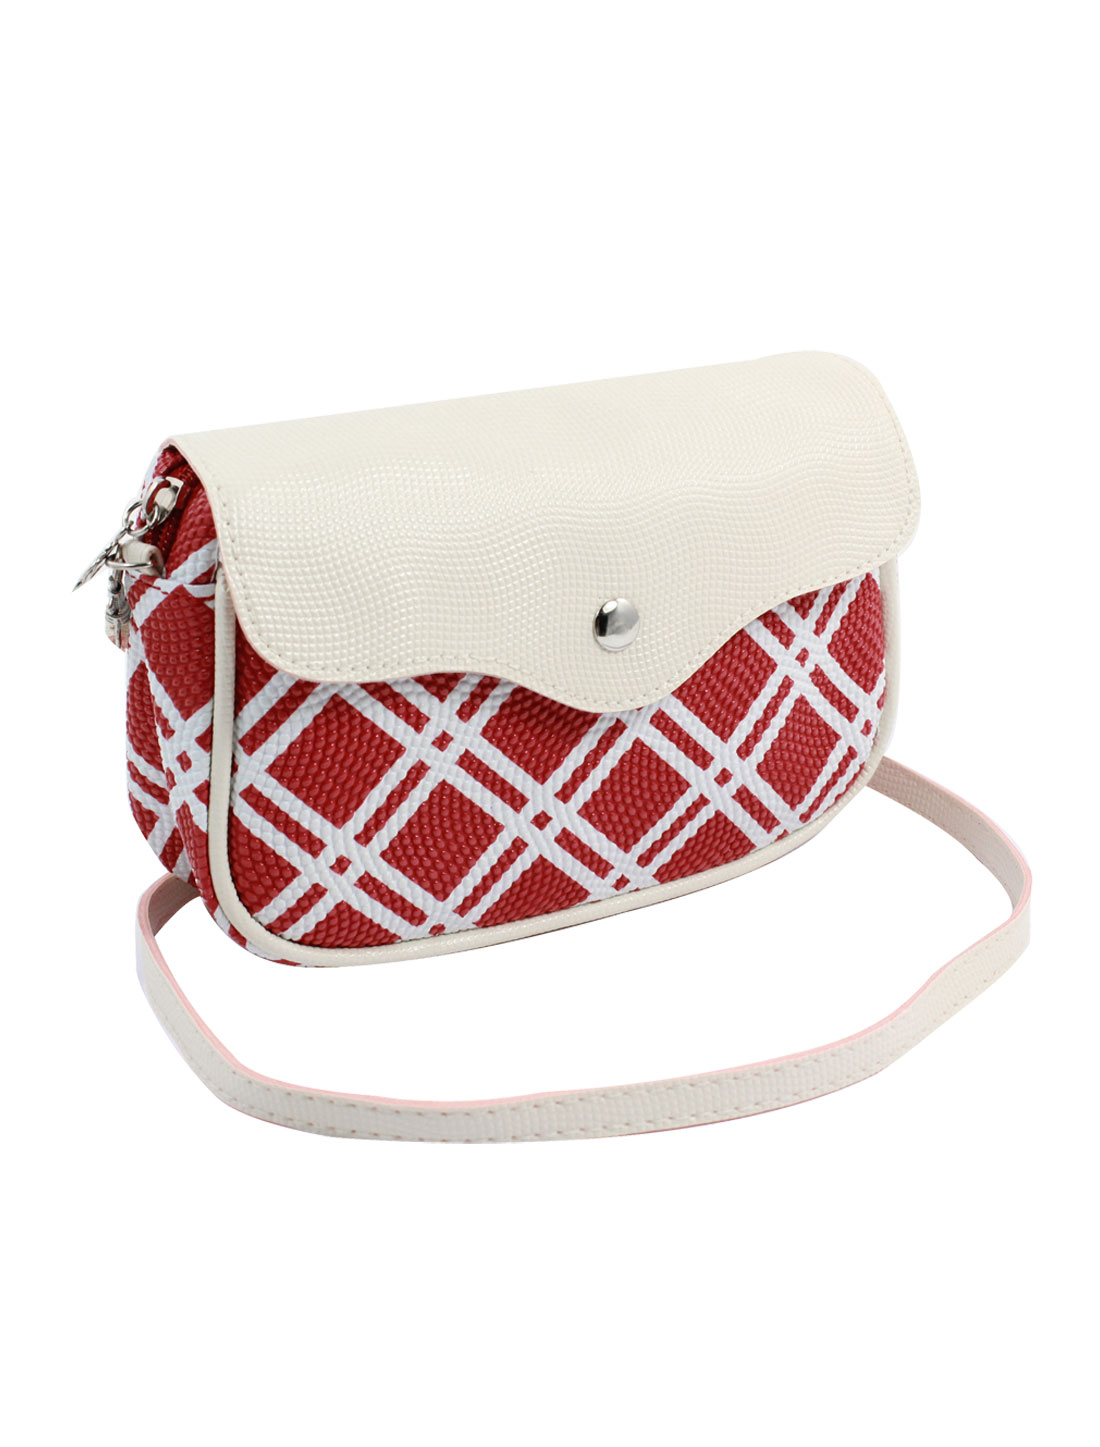 Women 2 Pockets Magnet Button Zippered Check Pattern Faux Leather Wallet Purse Bag Red White w Shoulder Strap